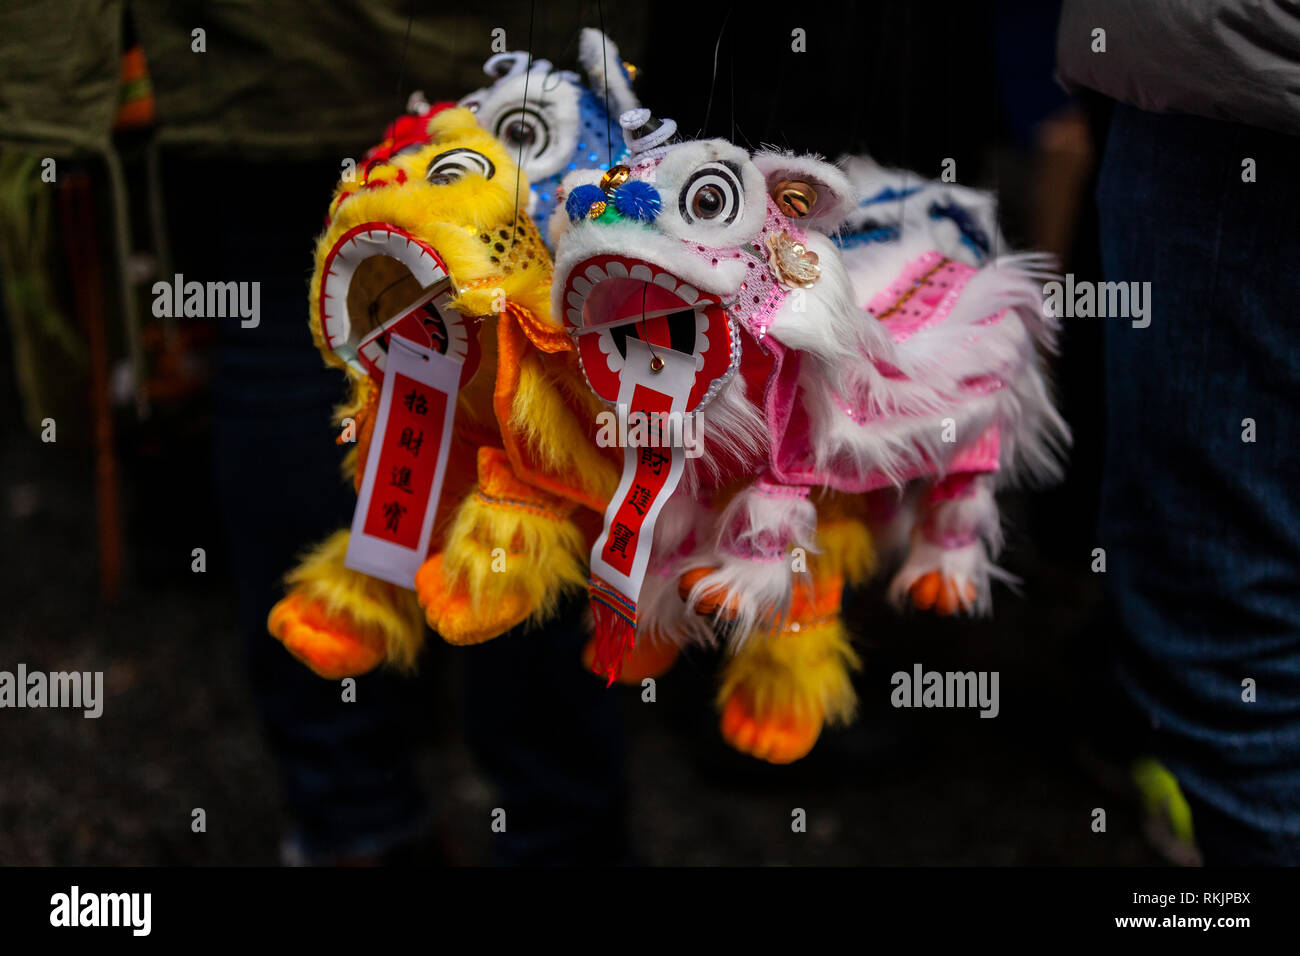 Chinese Lion Toy Stock Photos & Chinese Lion Toy Stock